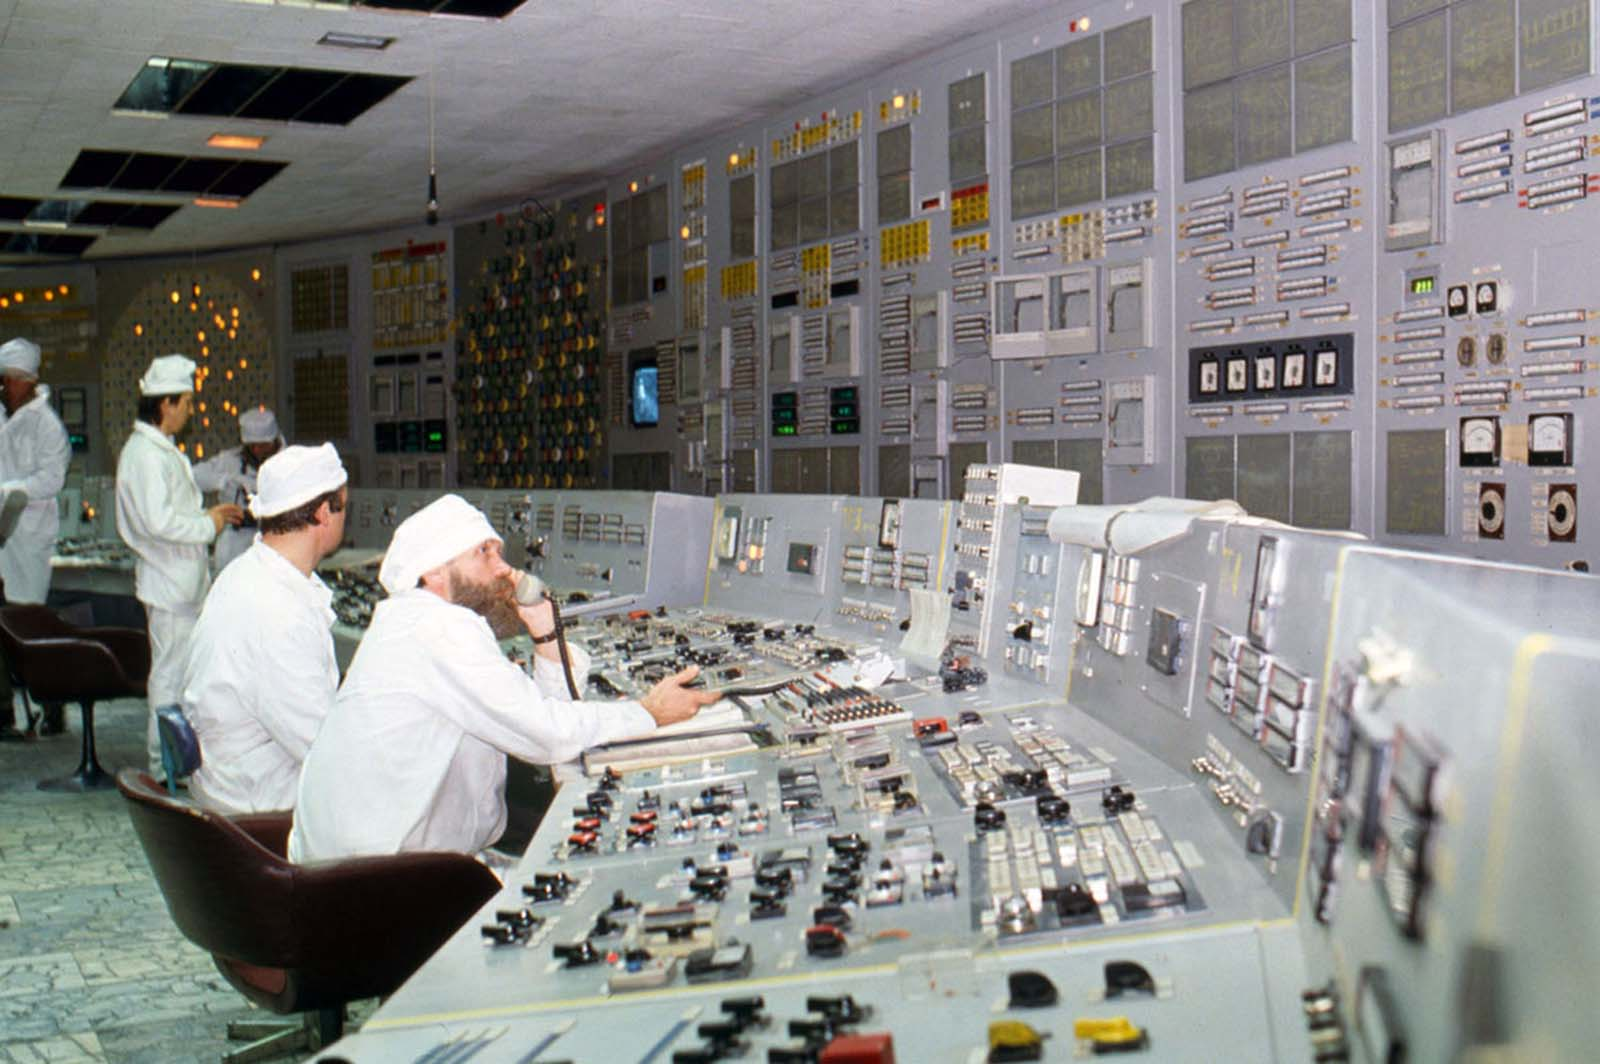 An interior photo of a still-functioning section of the Chernobyl nuclear-power plant taken a few months after the disaster in 1986.